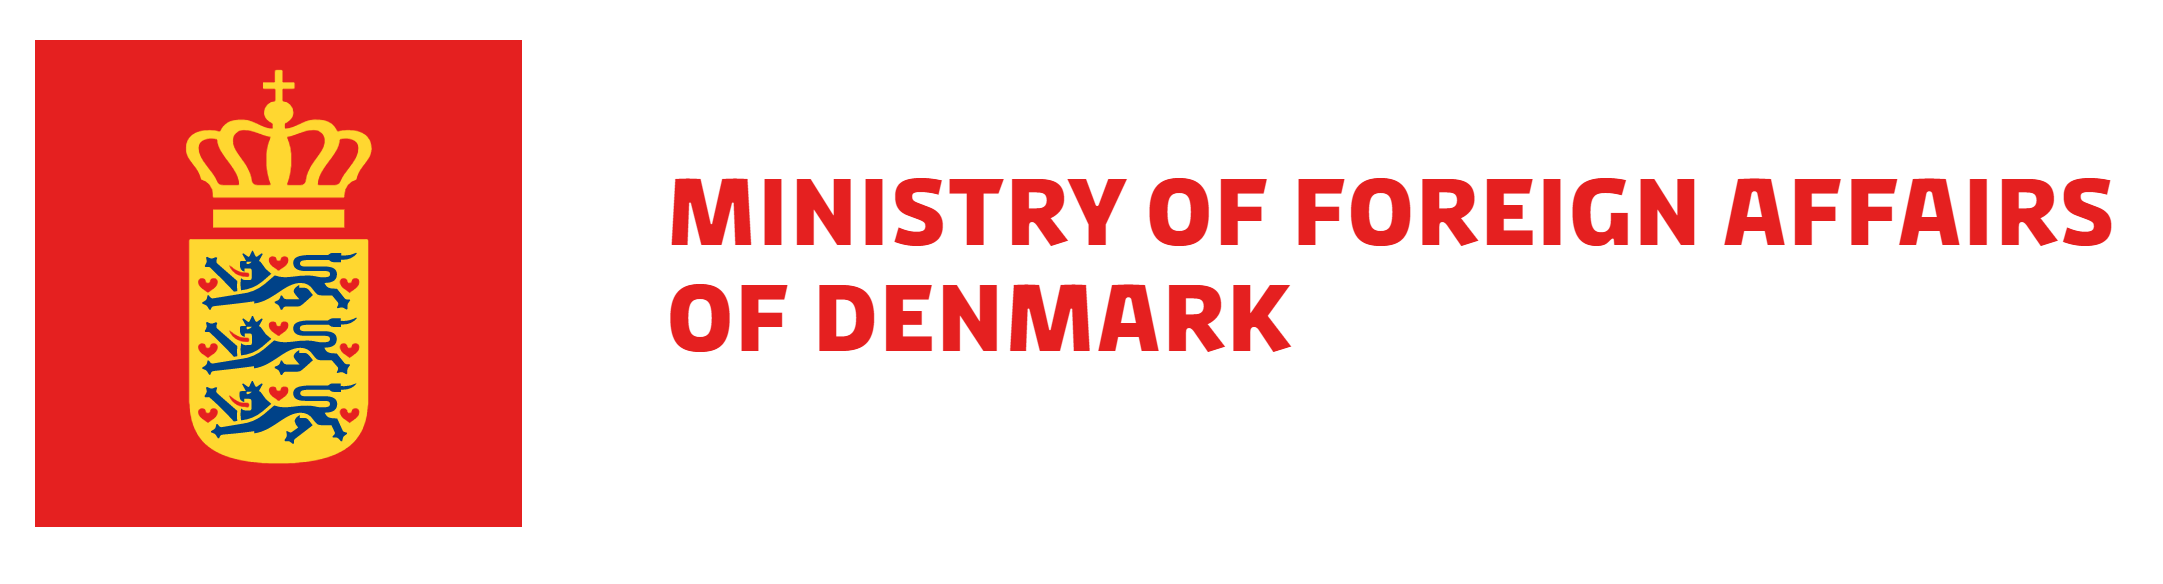 Ministry foreign affairs Denmark